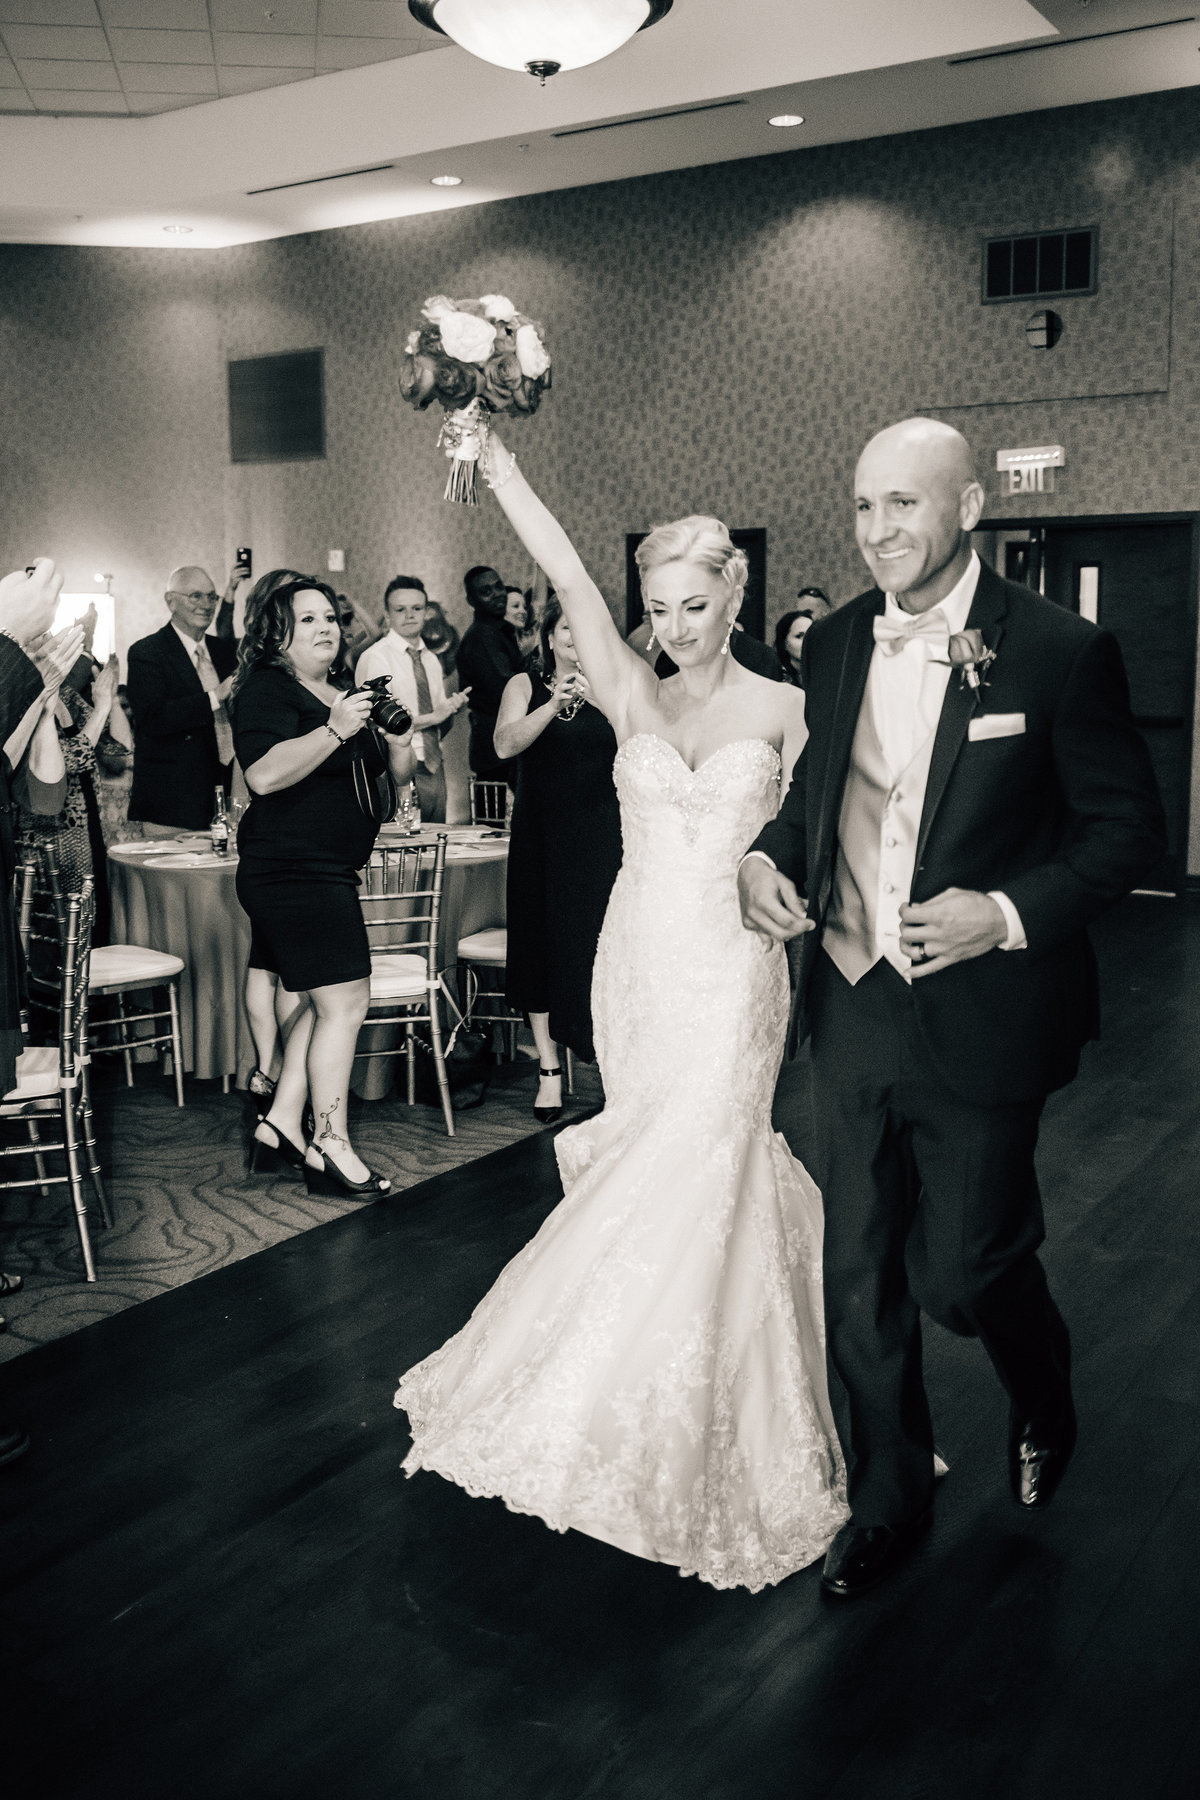 Kimberly_Hoyle_Photography_Milam_The_Back_Center_Melbourne_Wedding-72